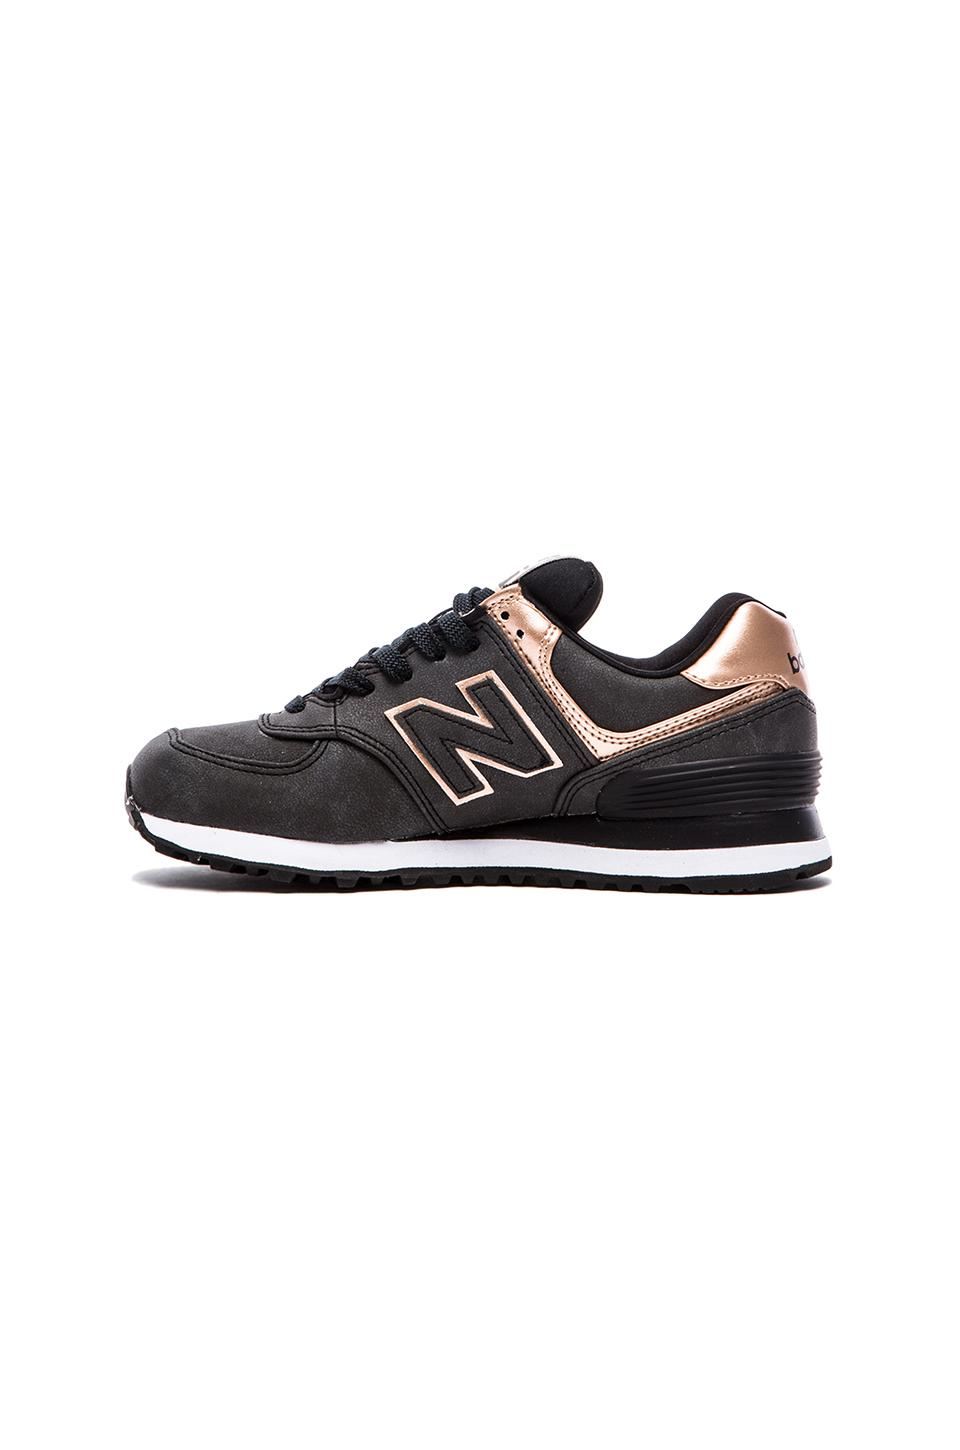 new balance 574 precious metals collection sneaker in charcoal